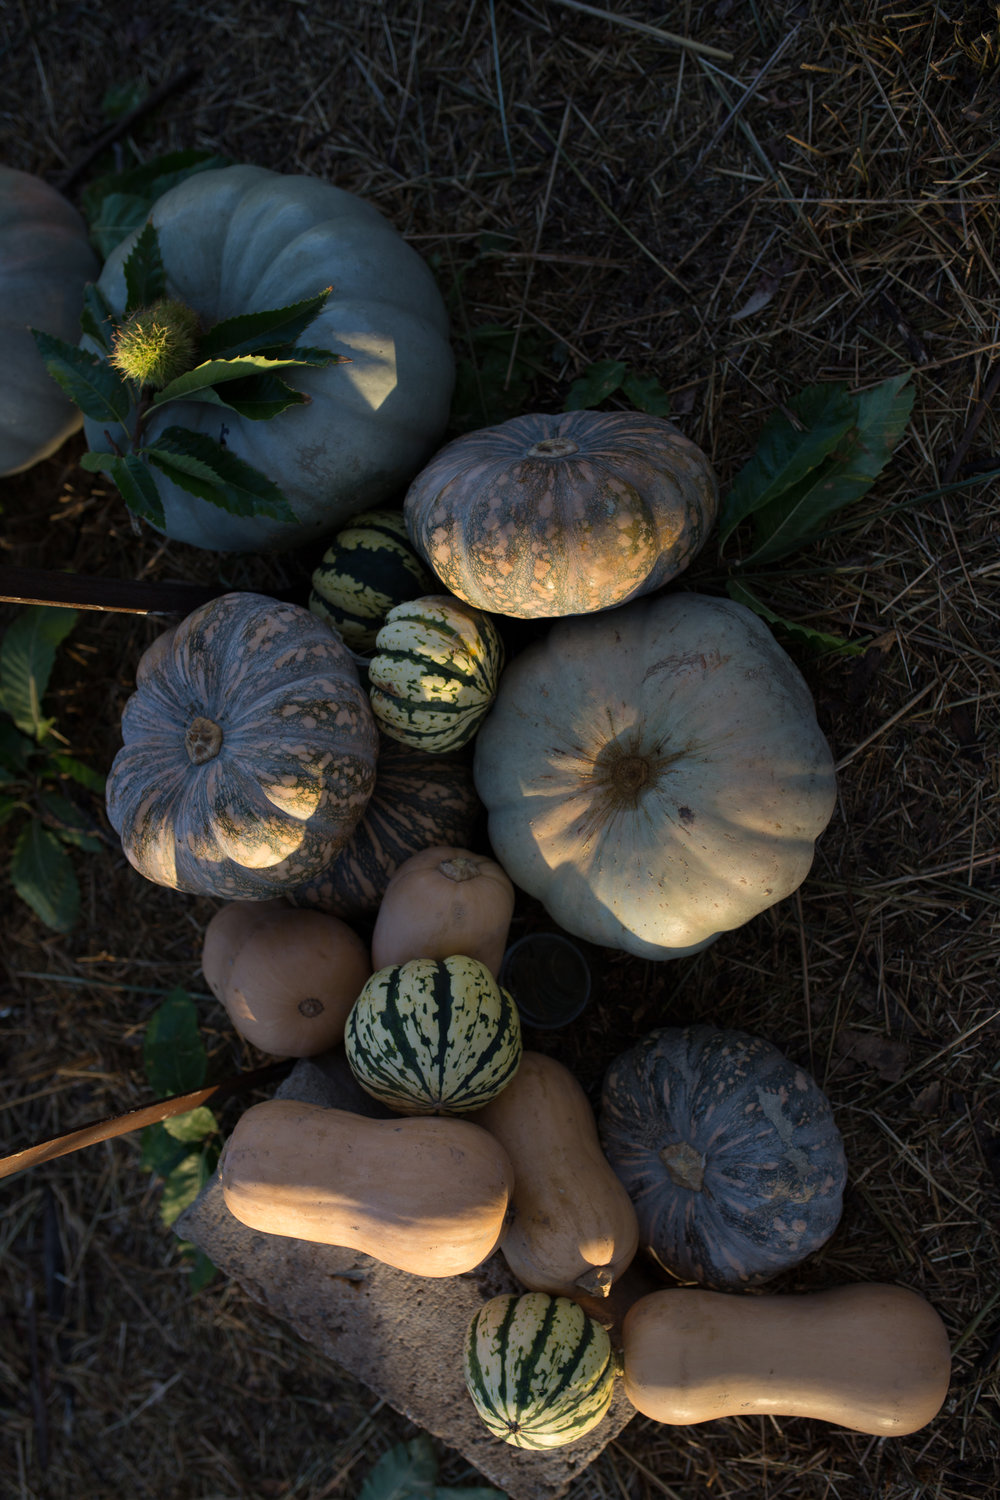 Autumn pumpkins from the neighbour